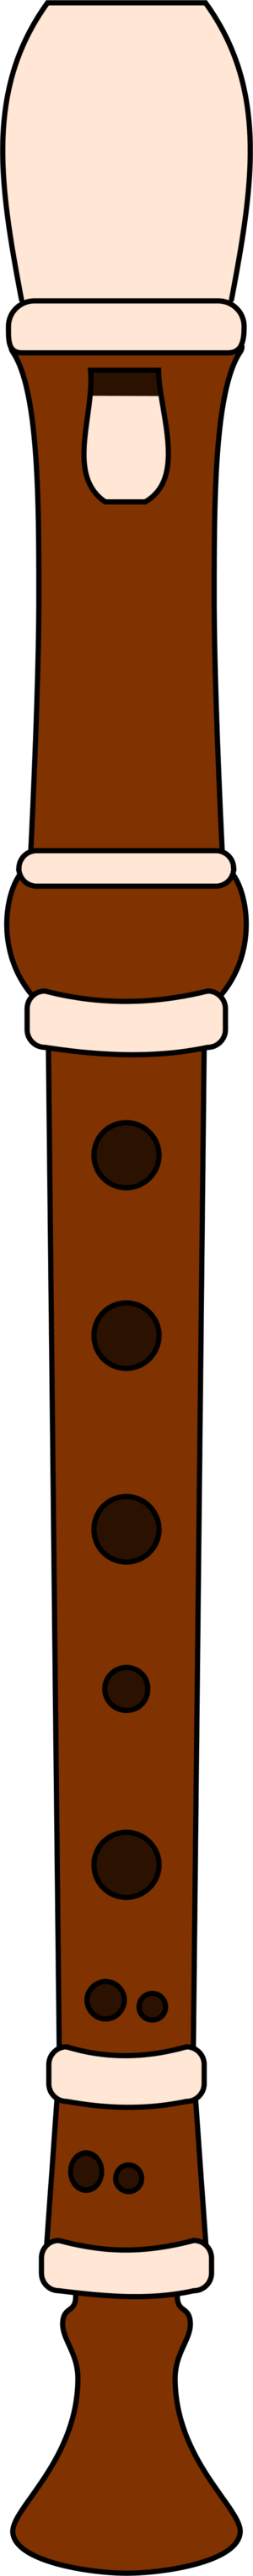 Recorder Image Clipart.